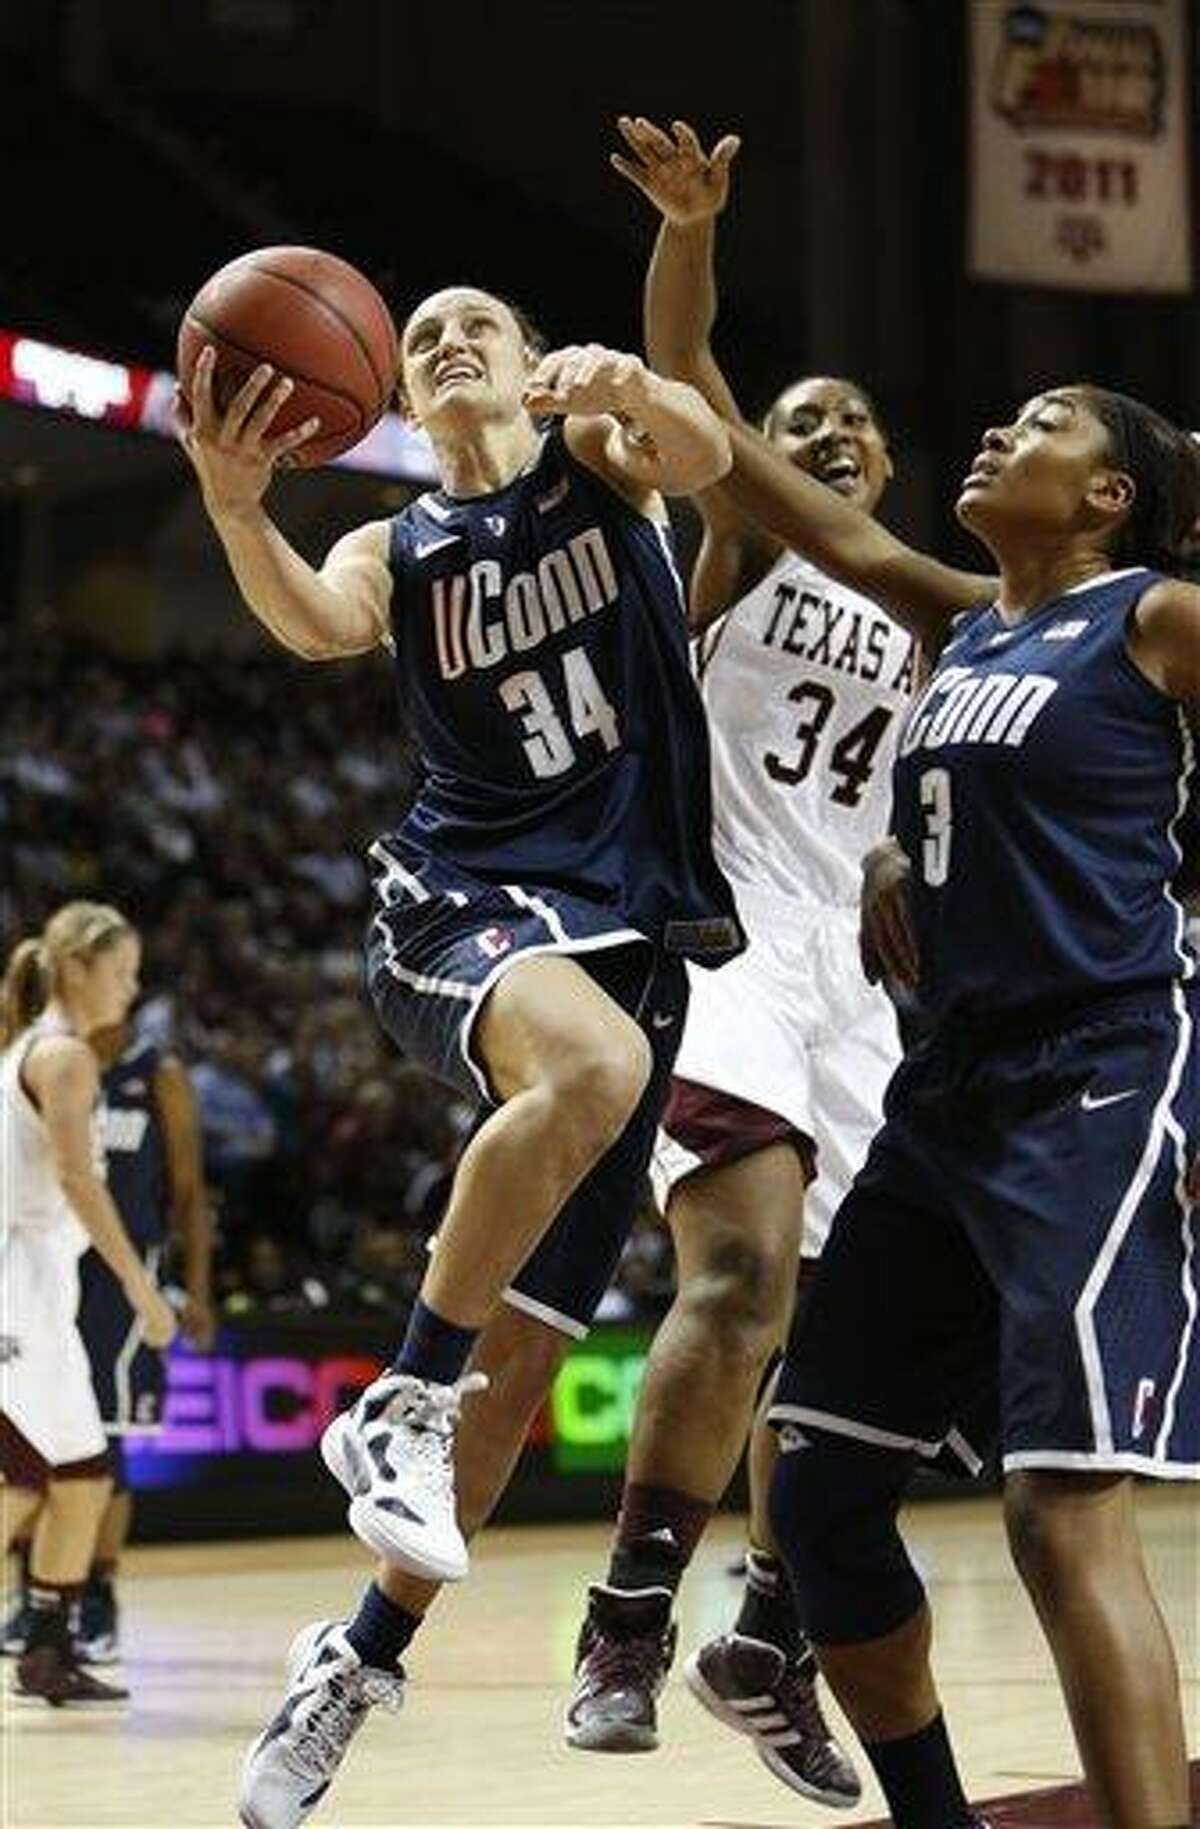 Connecticut's Kelly Faris (34) shoots the ball against Texas A&M defender Karla Gilbert (34) during the second half of an NCAA college basketball game on Sunday, Nov. 18, 2012, in College Station, Texas. Connecticut won 81-50. (AP Photo/Jon Eilts)